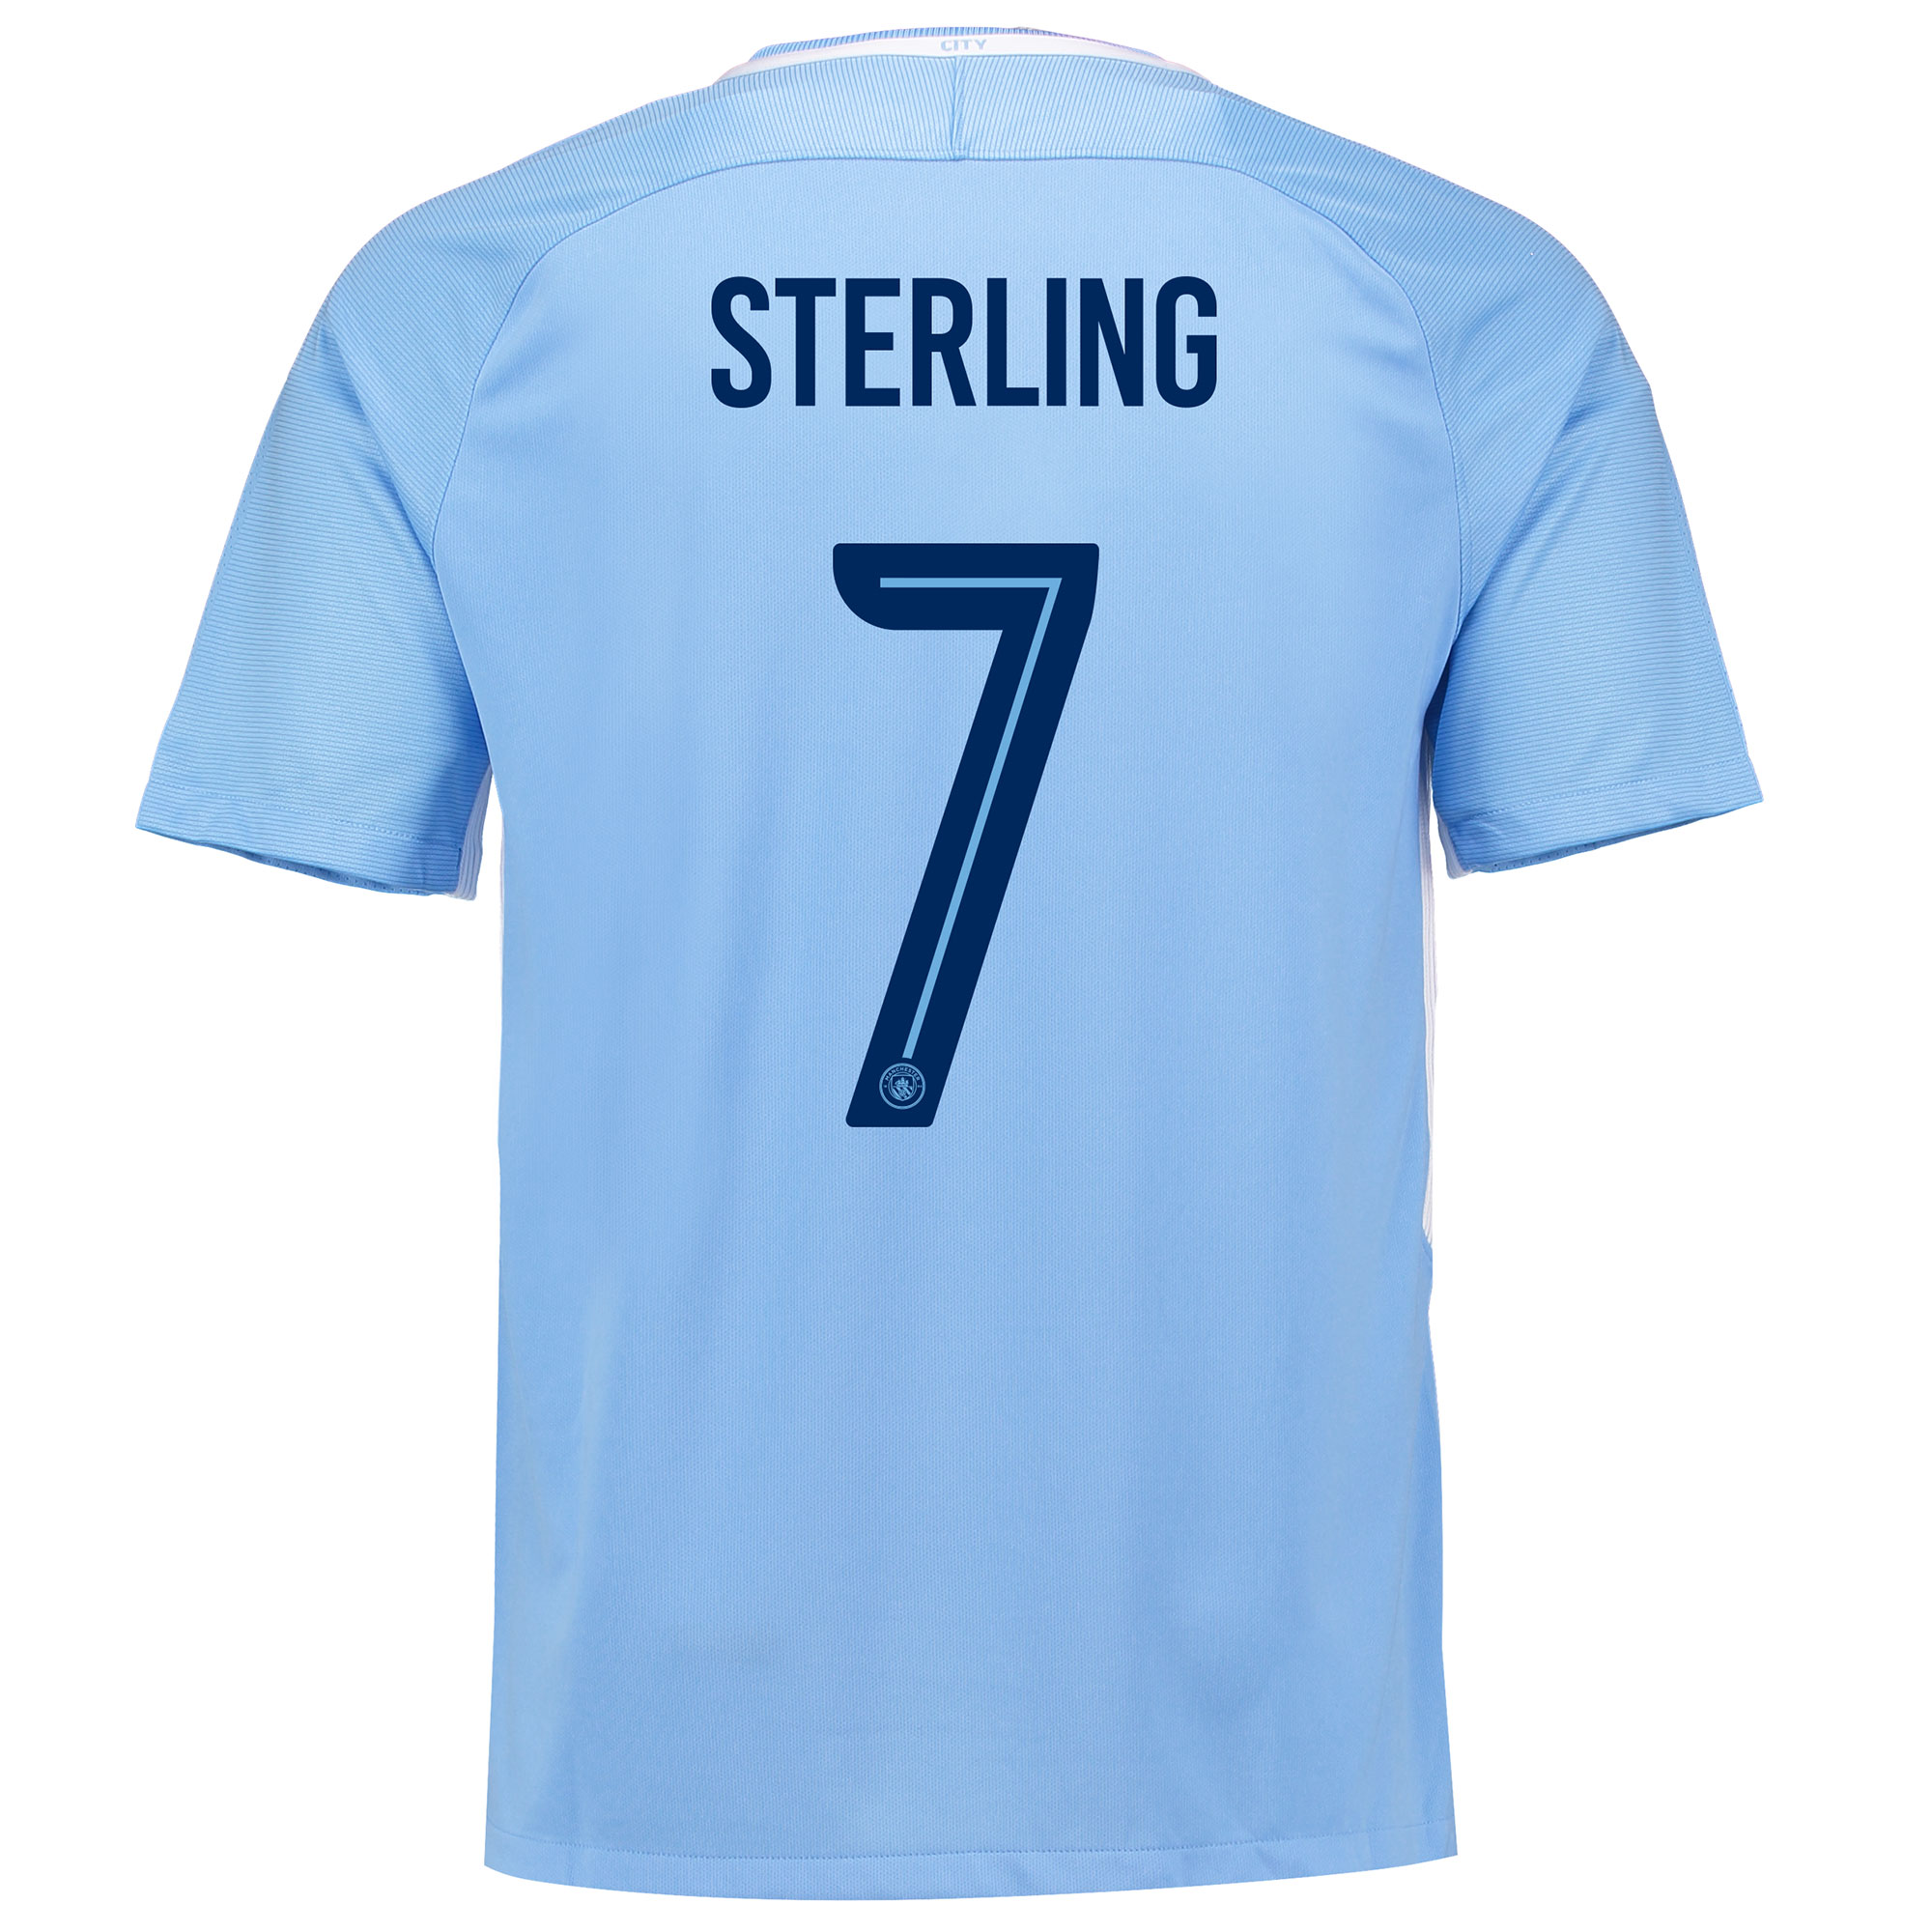 Manchester City Home Stadium Cup Shirt 2017-18 with Sterling 7 printin